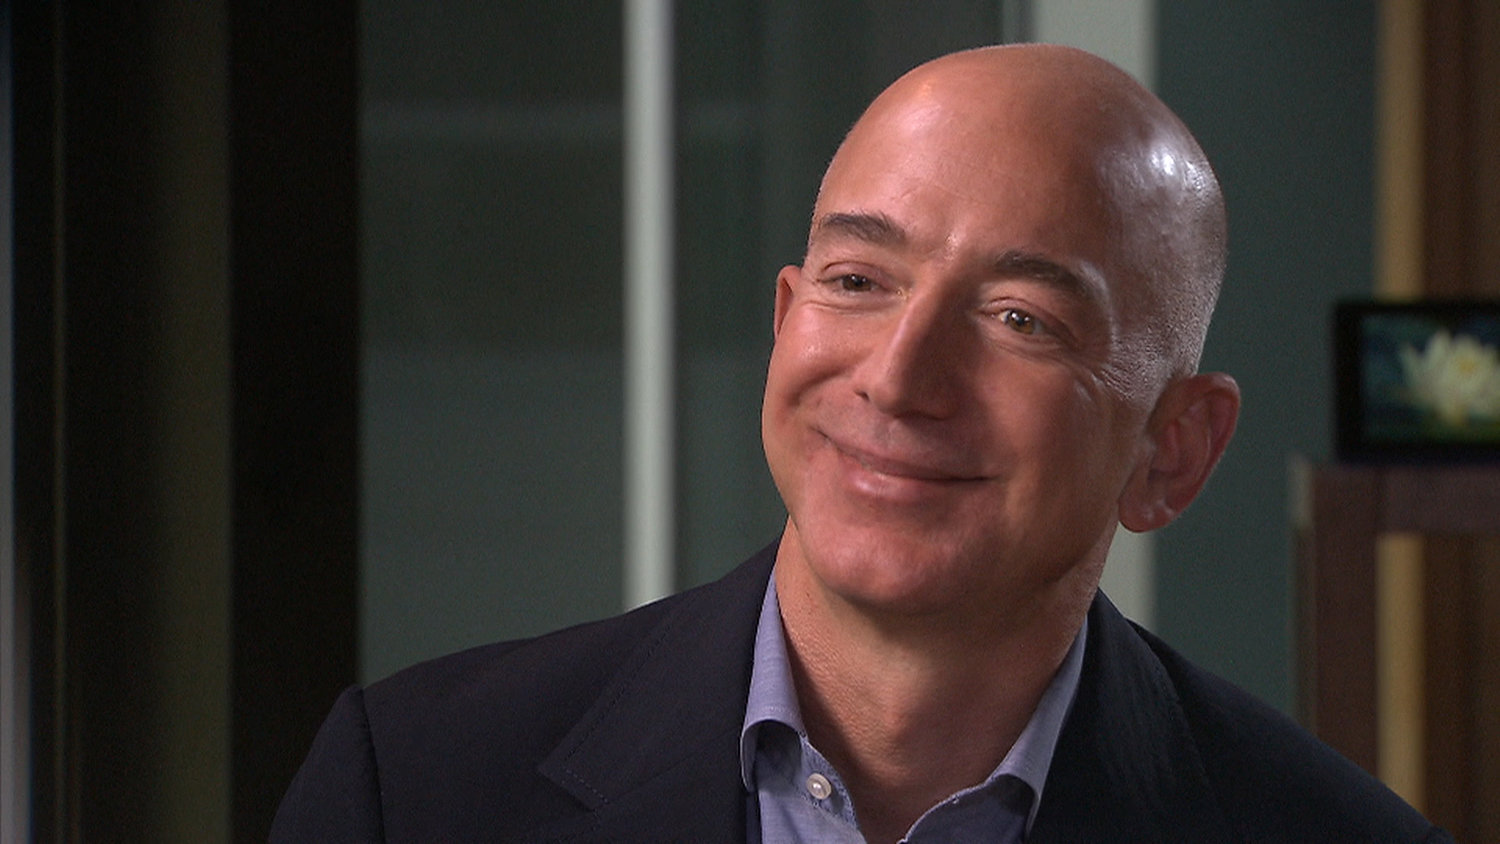 Jeff Bezos Won't Let You Poop In His Spacecraft When It Launches